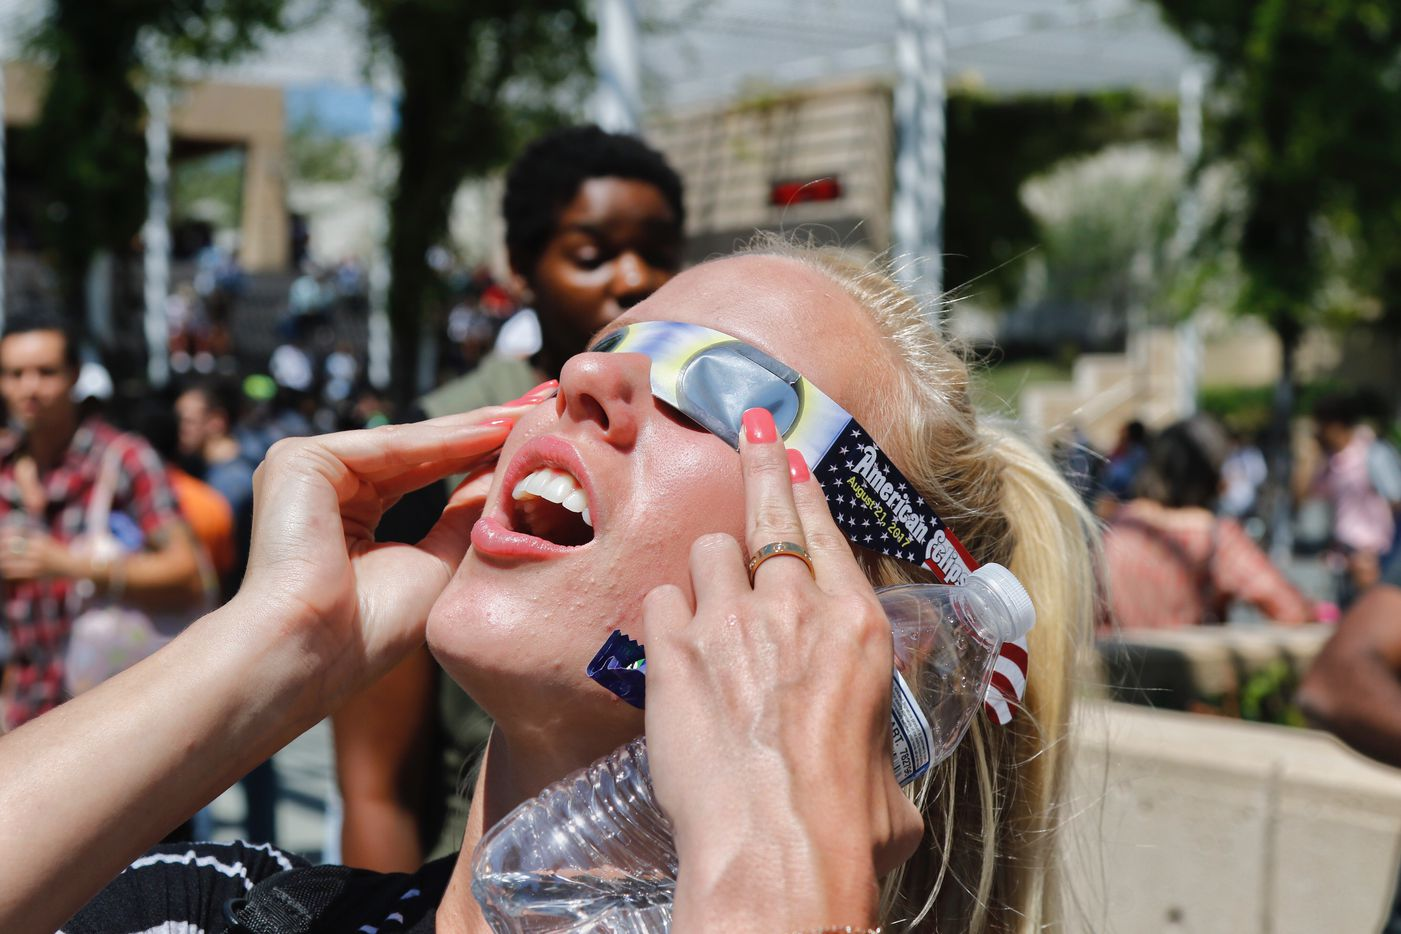 University of Texas at Dallas student Ashton Murray reacts as she views the solar eclipse through borrowed eclipse glasses. She was one of hundreds of students and faculty who stopped by the McDermott Library eclipse party.